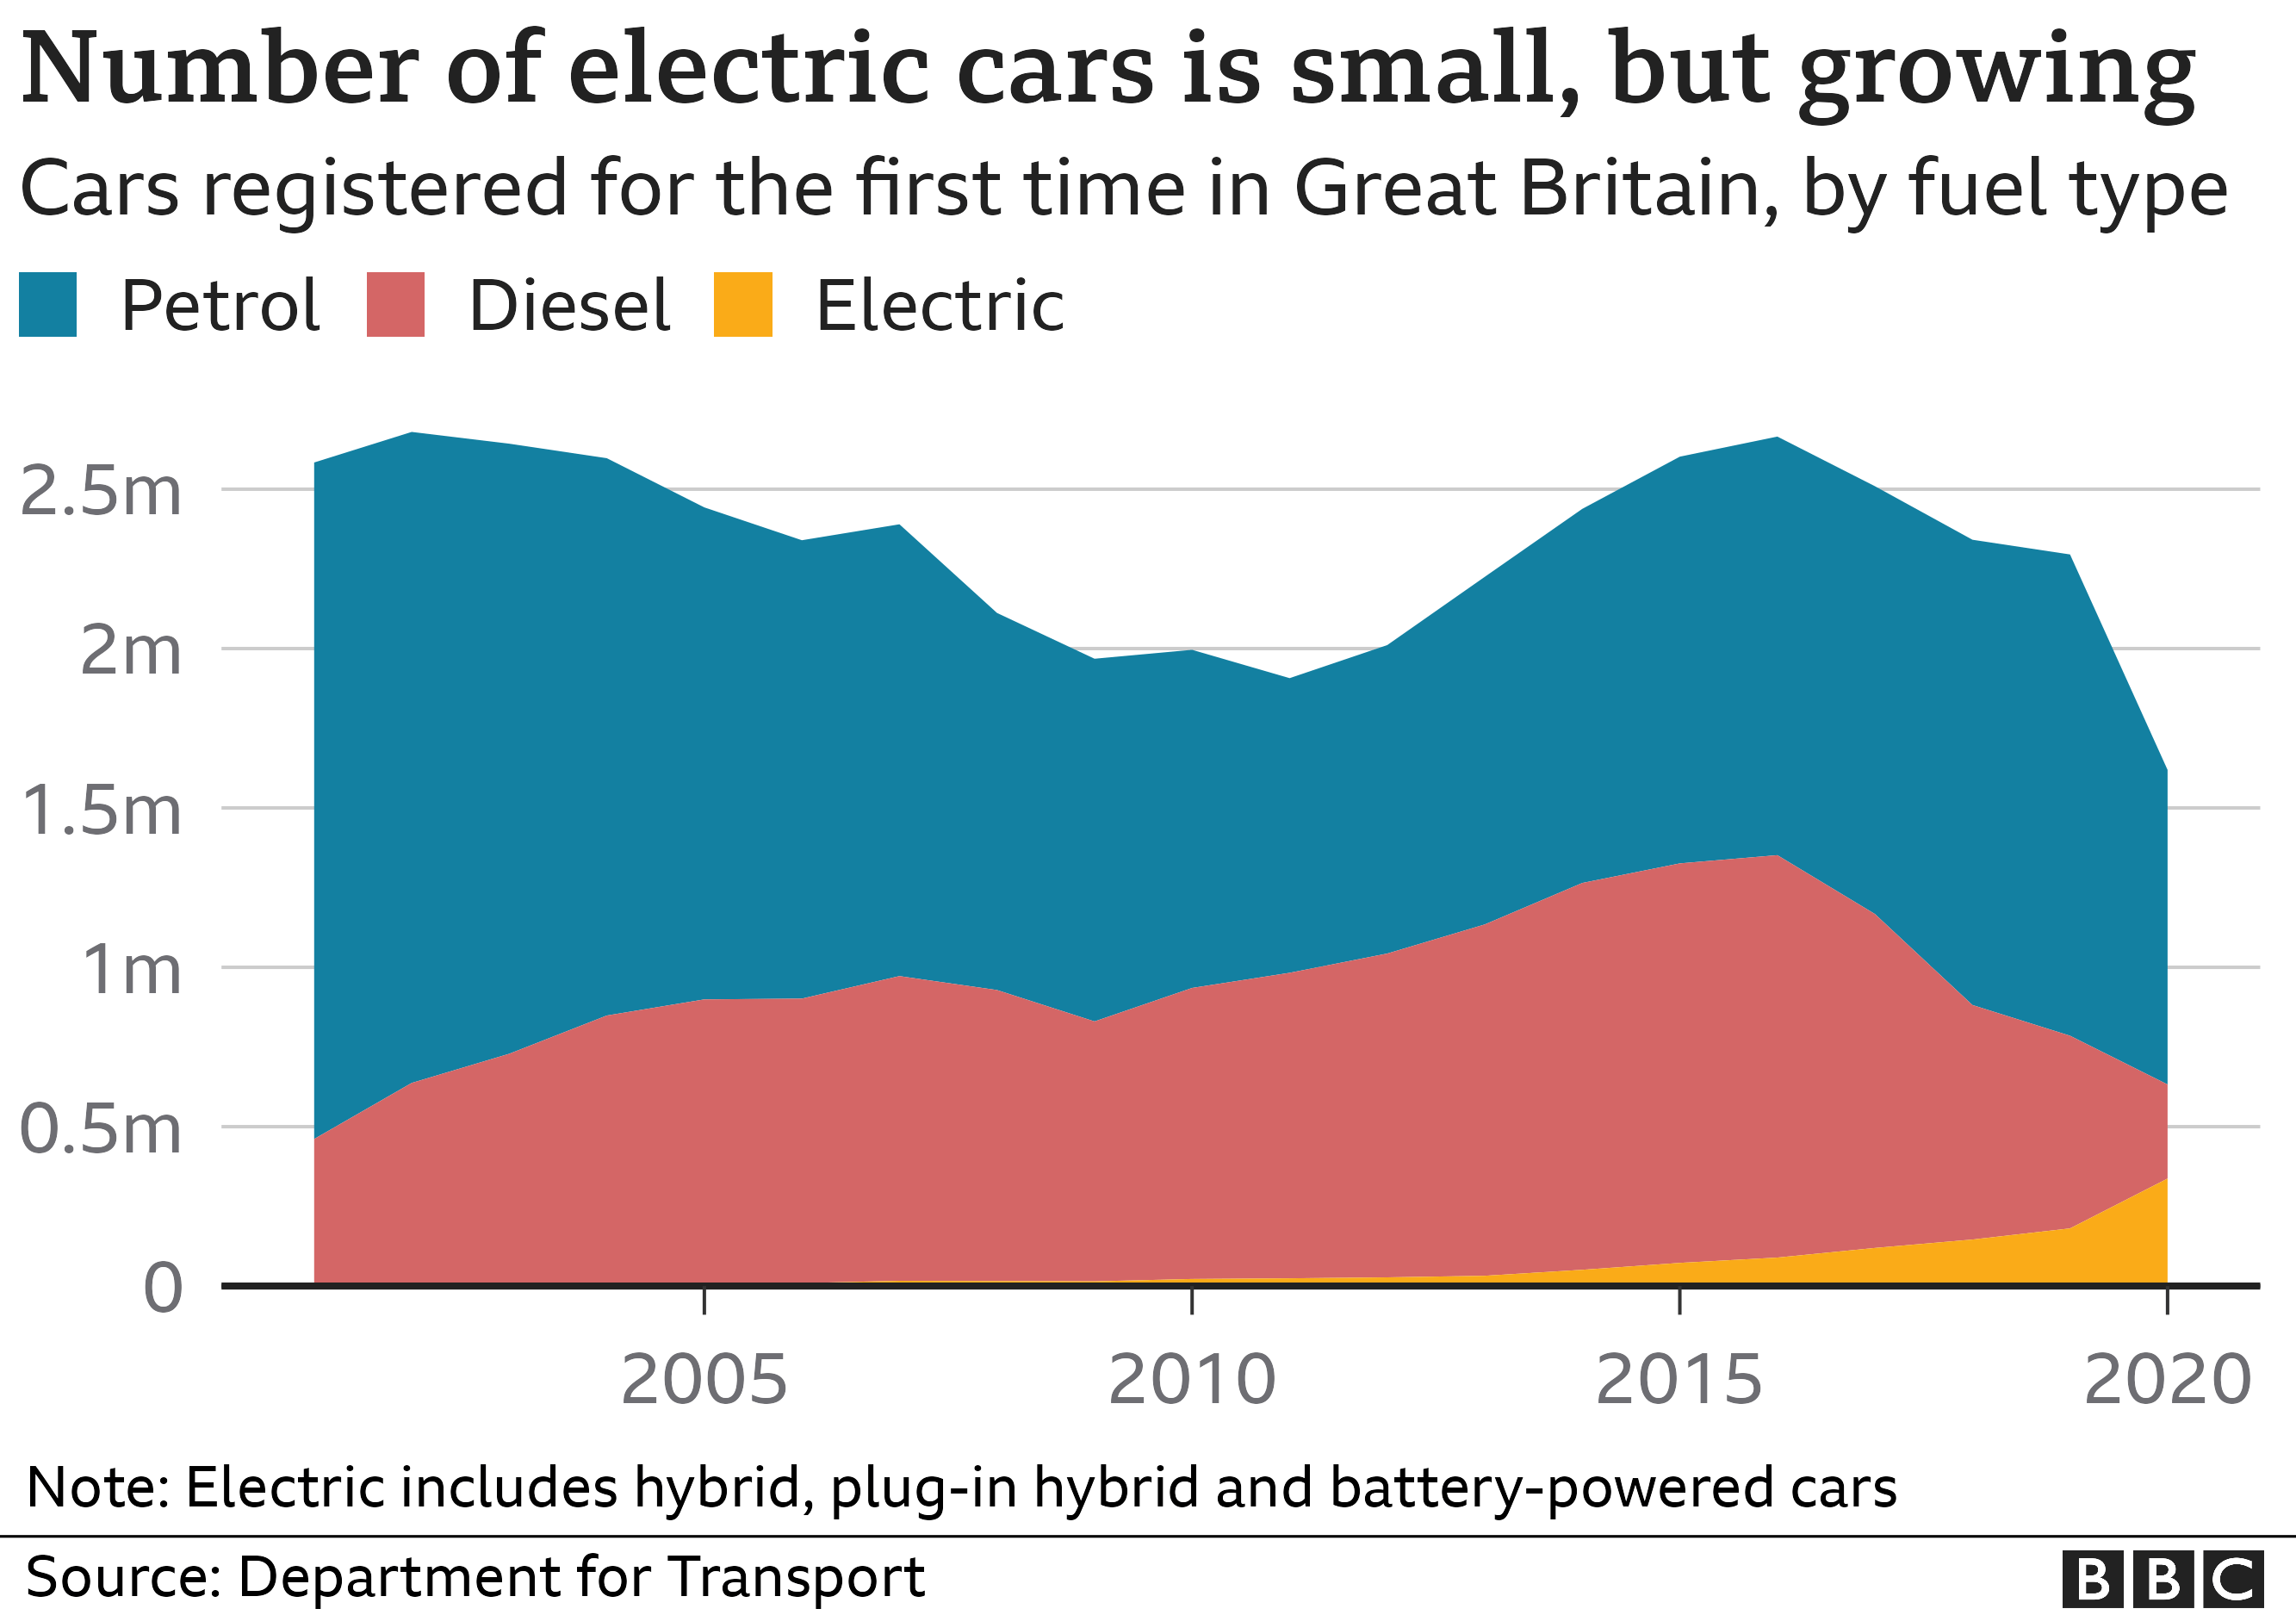 Number of electric, petrol and diesel cars sold in Great Britain